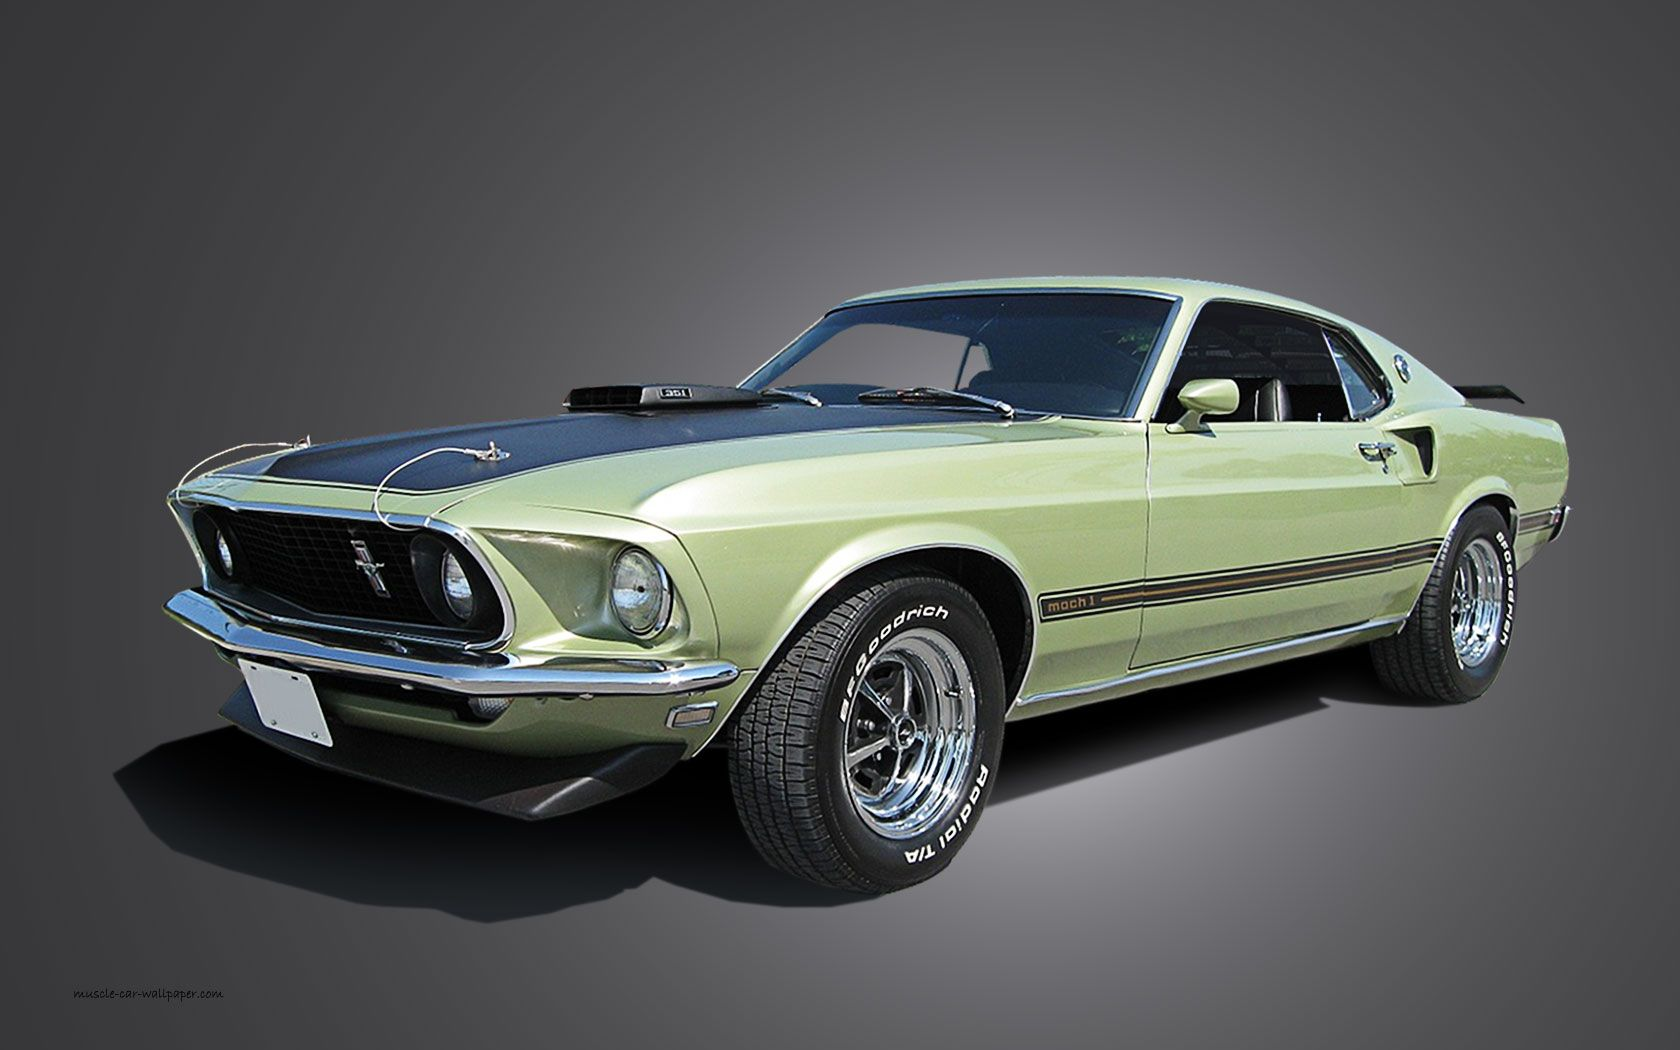 1969 Ford Mustang Mach 1 Wallpaper Picture 1680 06 Ford Mustang Mustang Mach 1 1969 Ford Mustang Mach 1